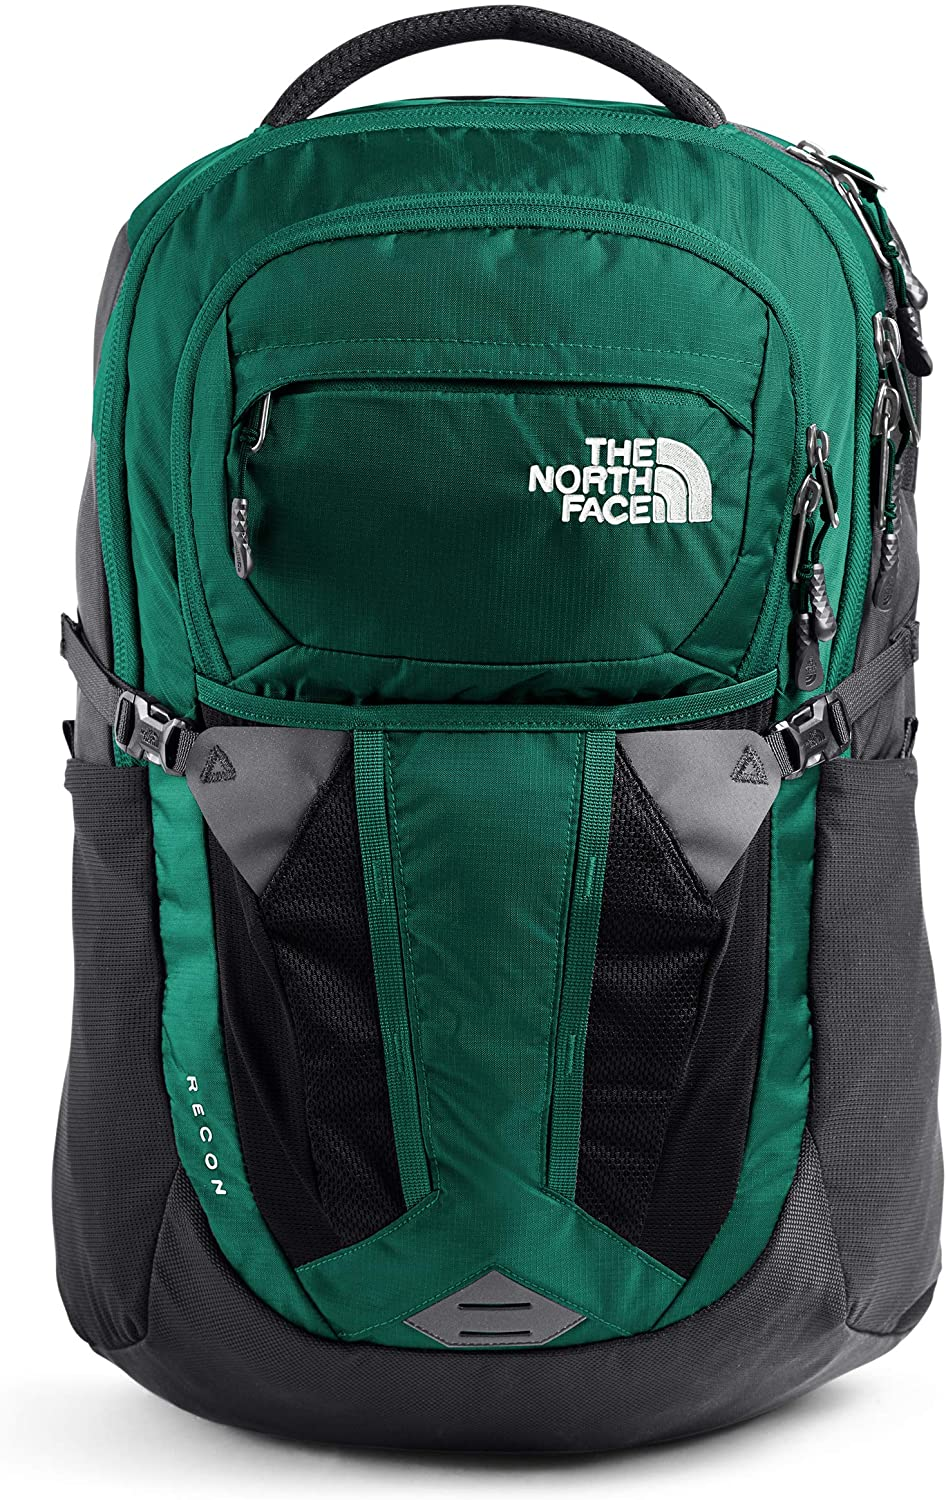 The North Face Women's Recon Backpack, Evergreen/Asphalt Grey, One Size